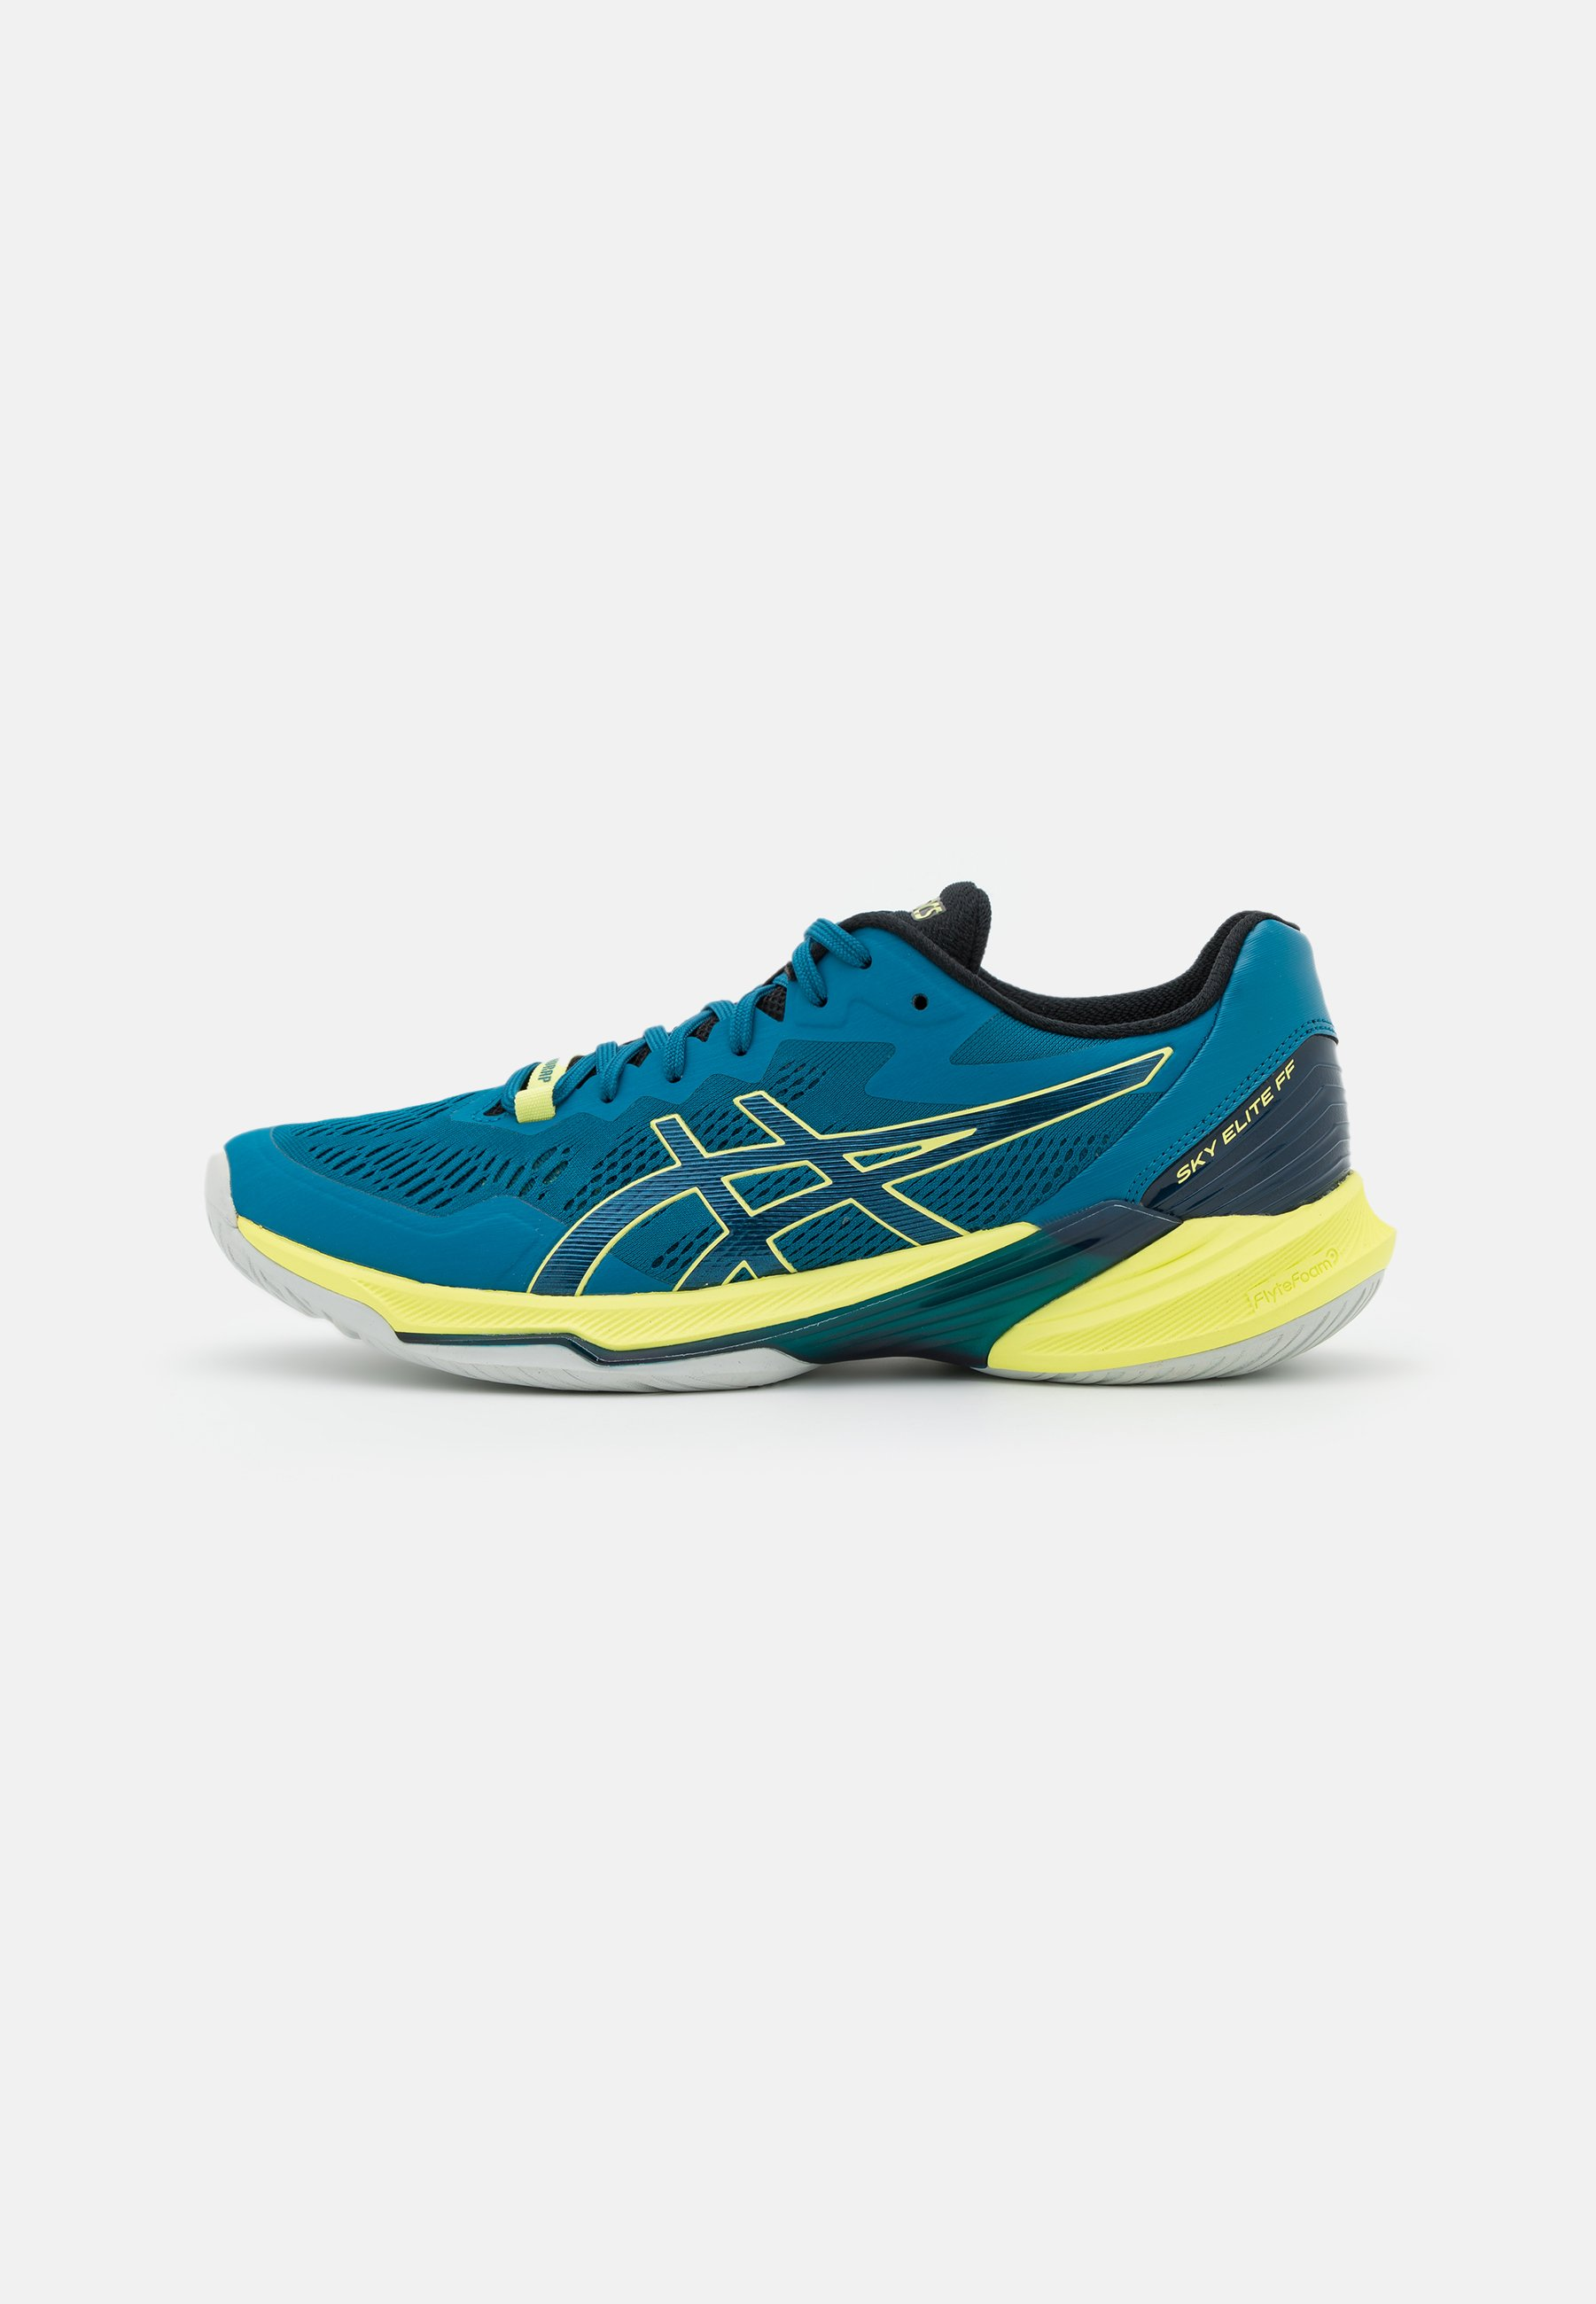 Men SKY ELITE 2 FF - Volleyball shoes